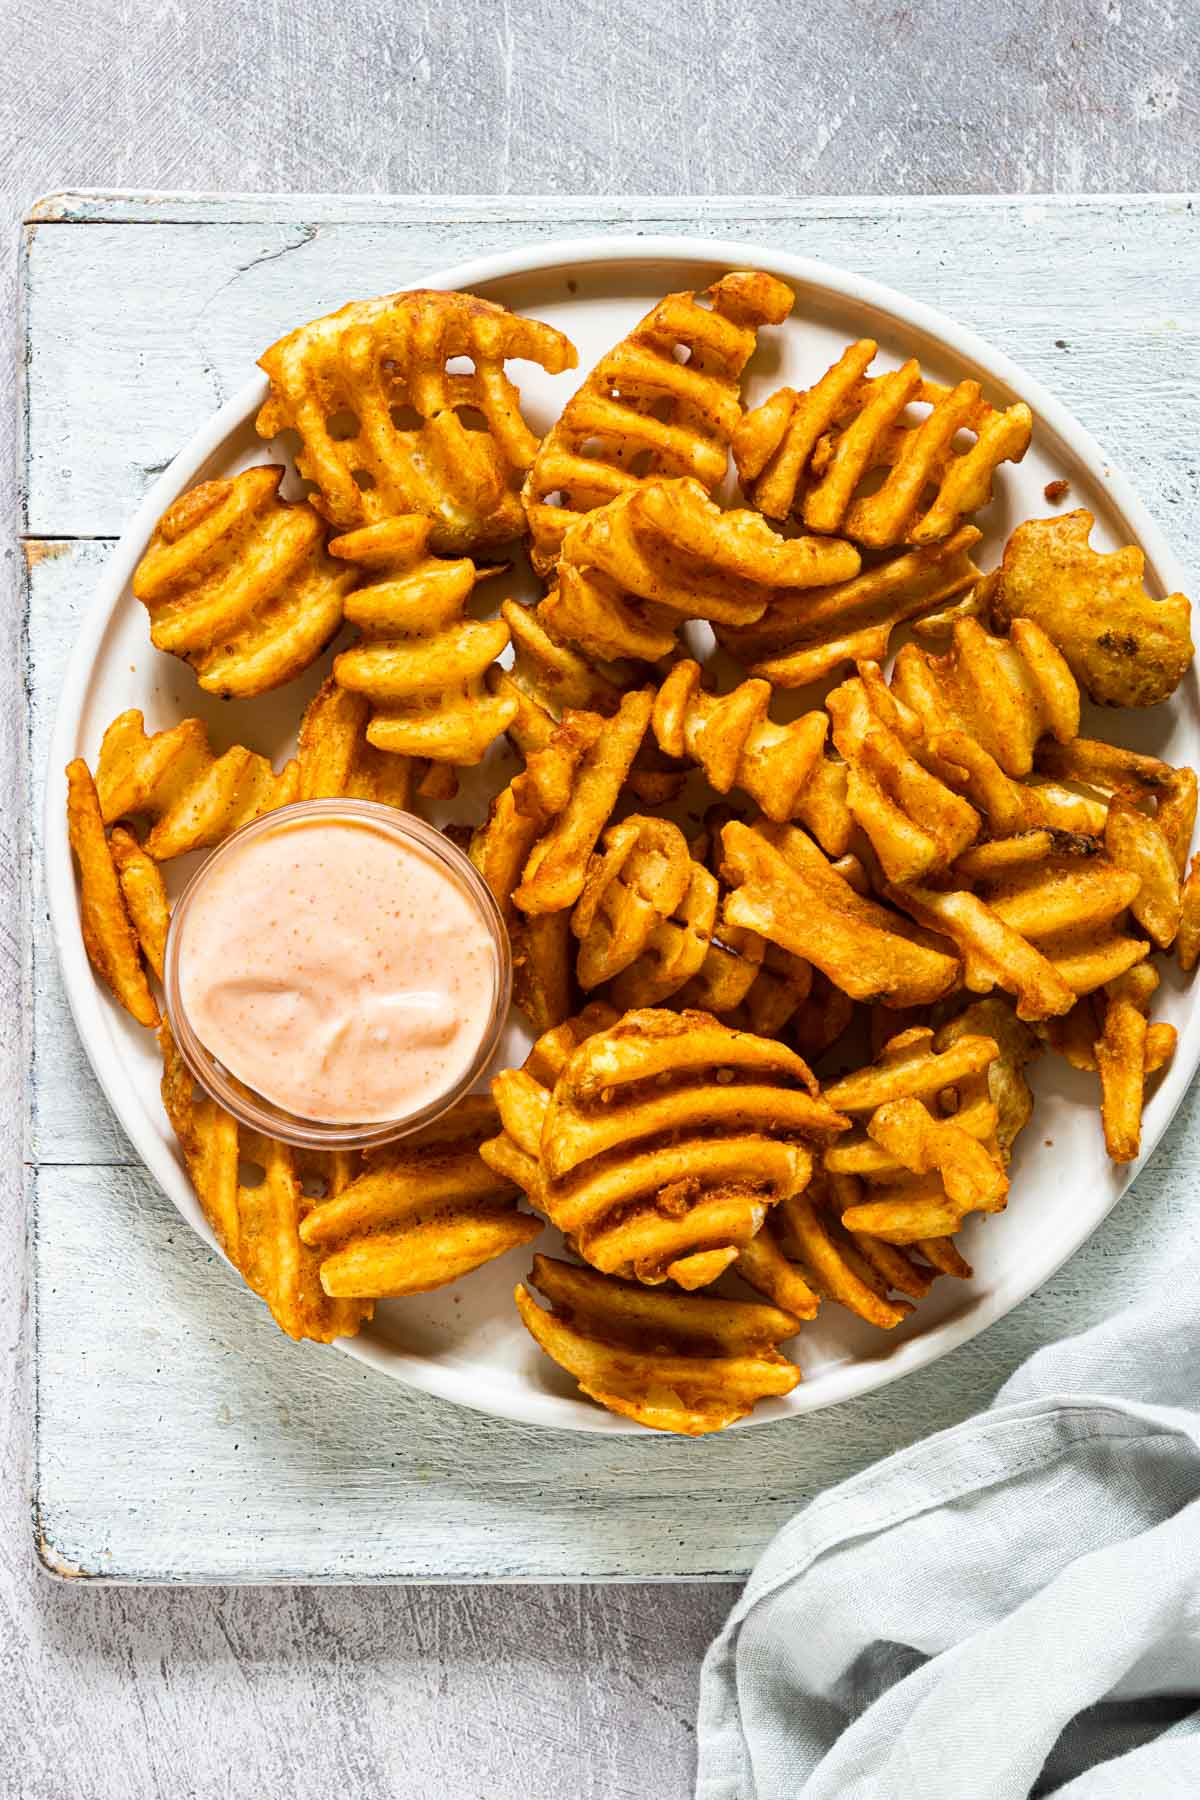 a plate of waffle fries served with the sriracha aioli dipping sauce